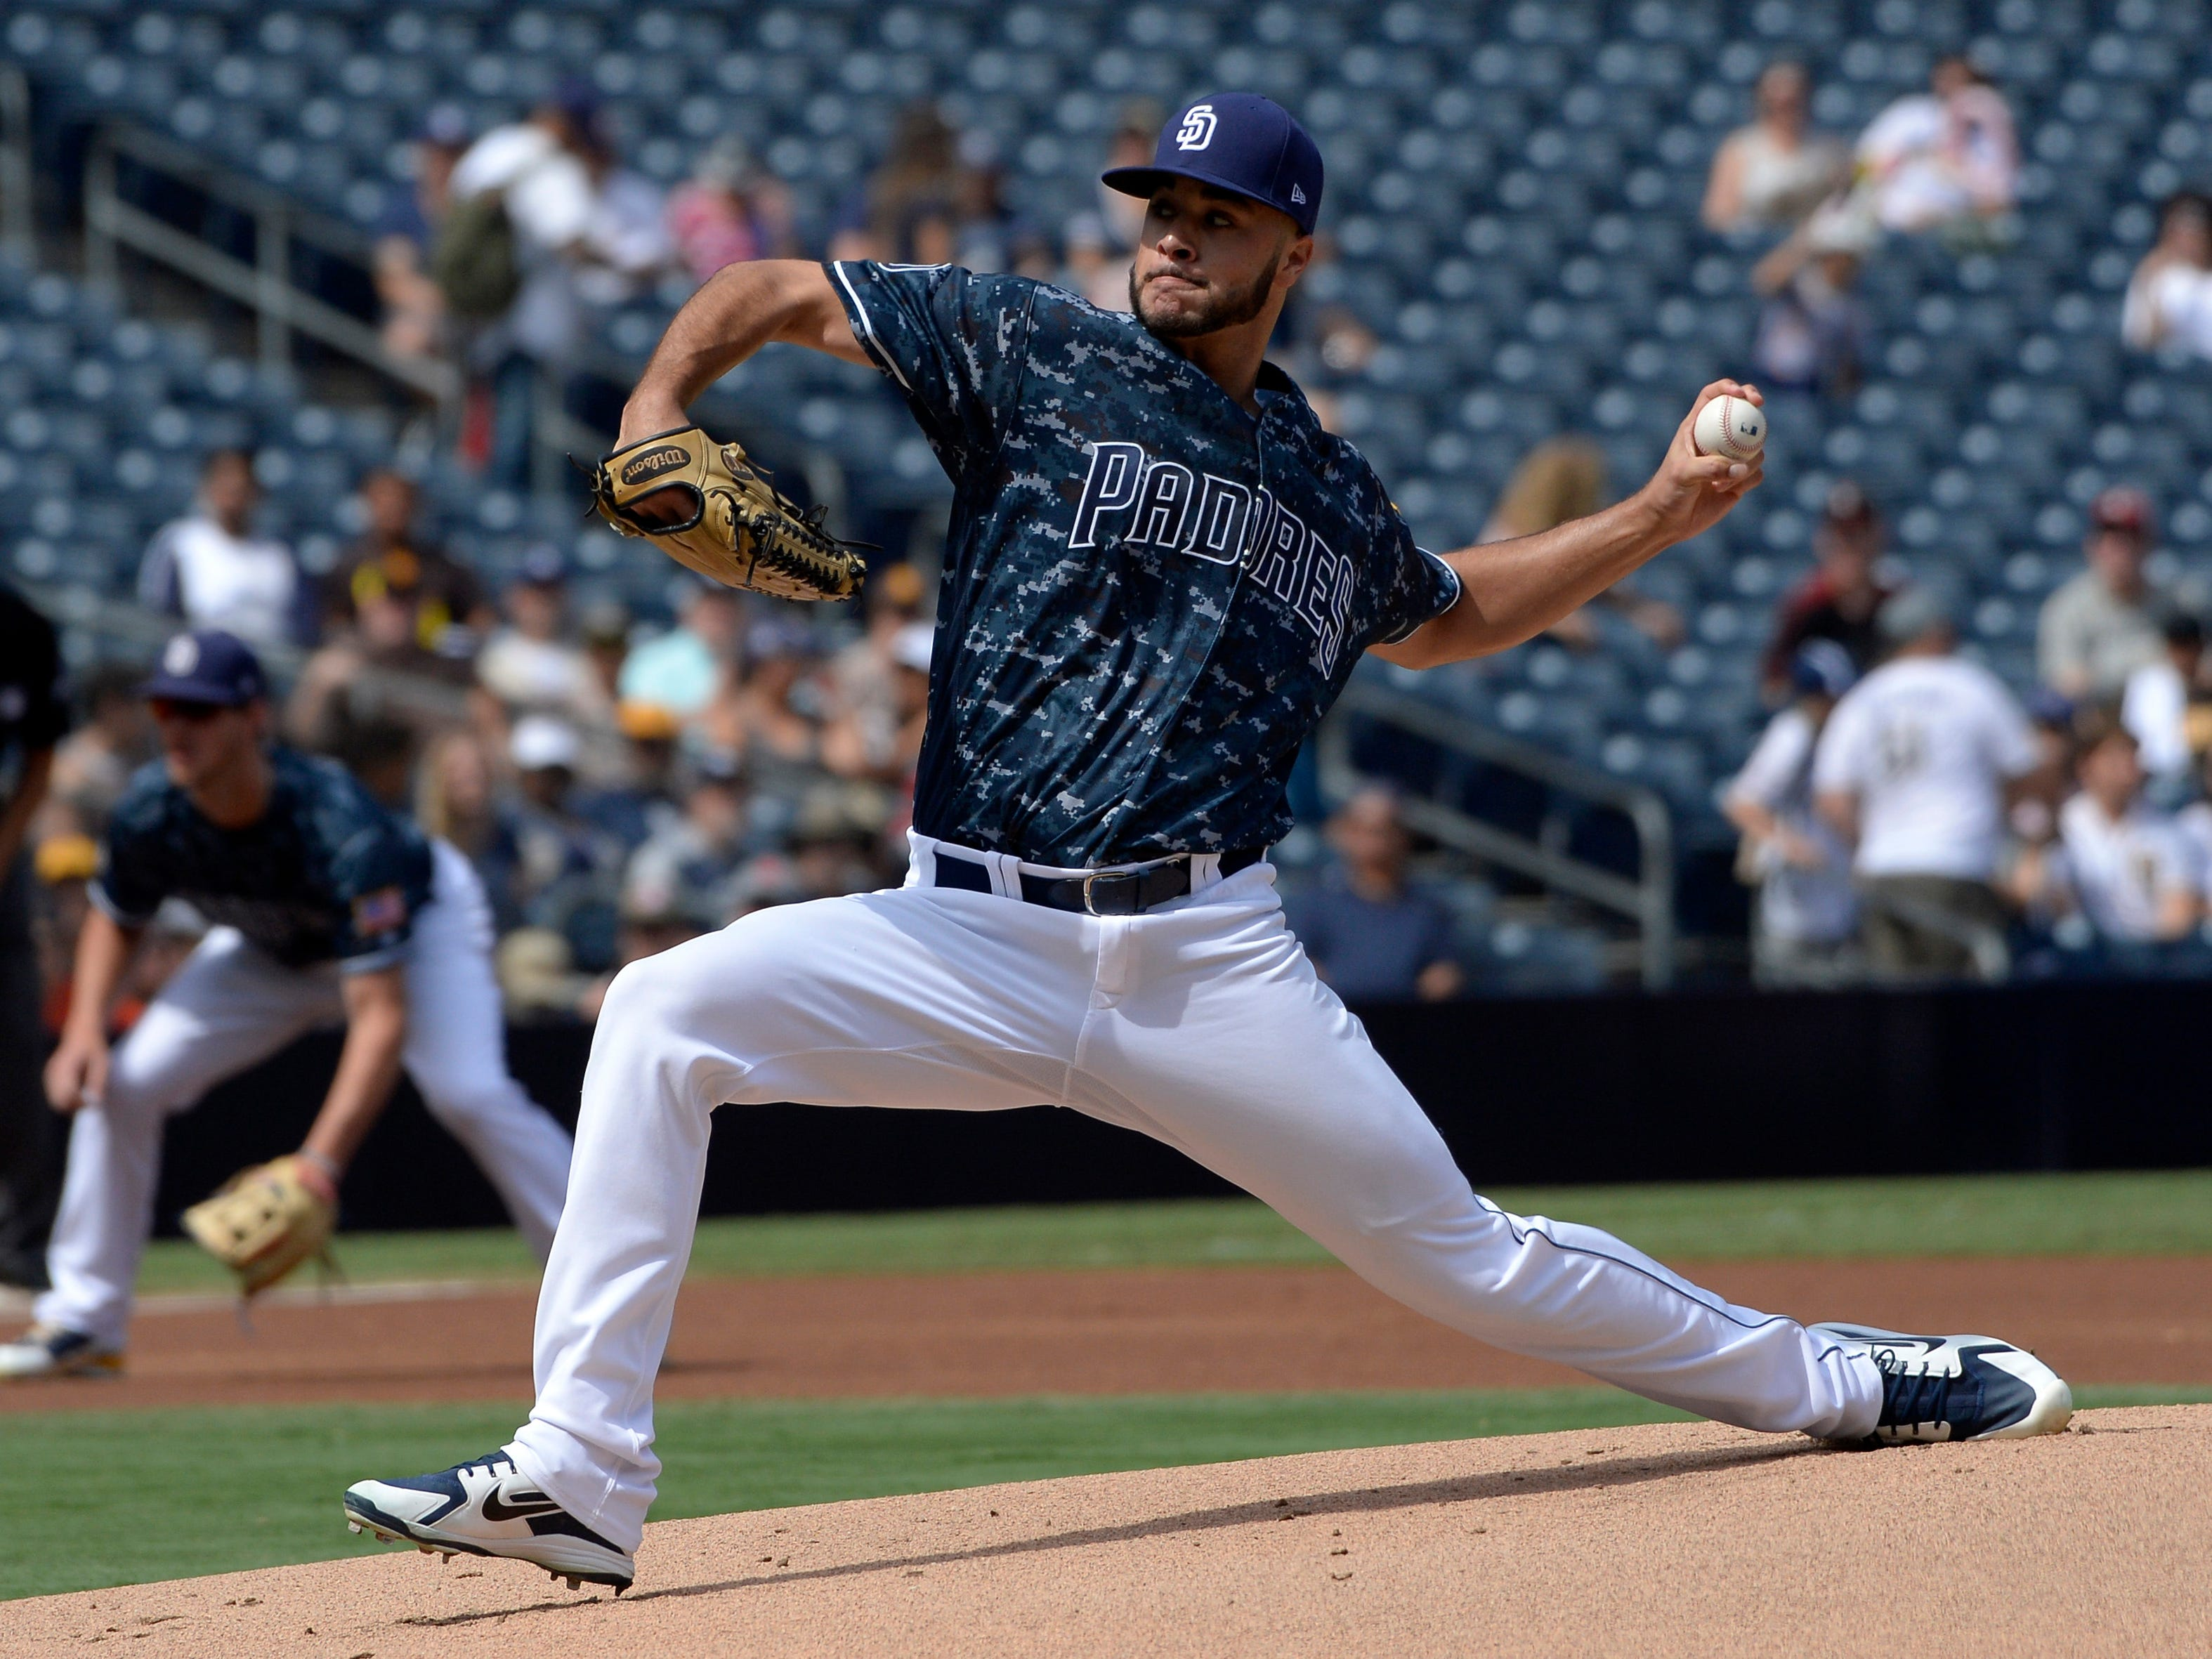 Sep 30, 2018; San Diego, CA, USA; San Diego Padres starting pitcher Joey Lucchesi (37) pitches during the first inning against the Arizona Diamondbacks at Petco Park. Mandatory Credit: Jake Roth-USA TODAY Sports